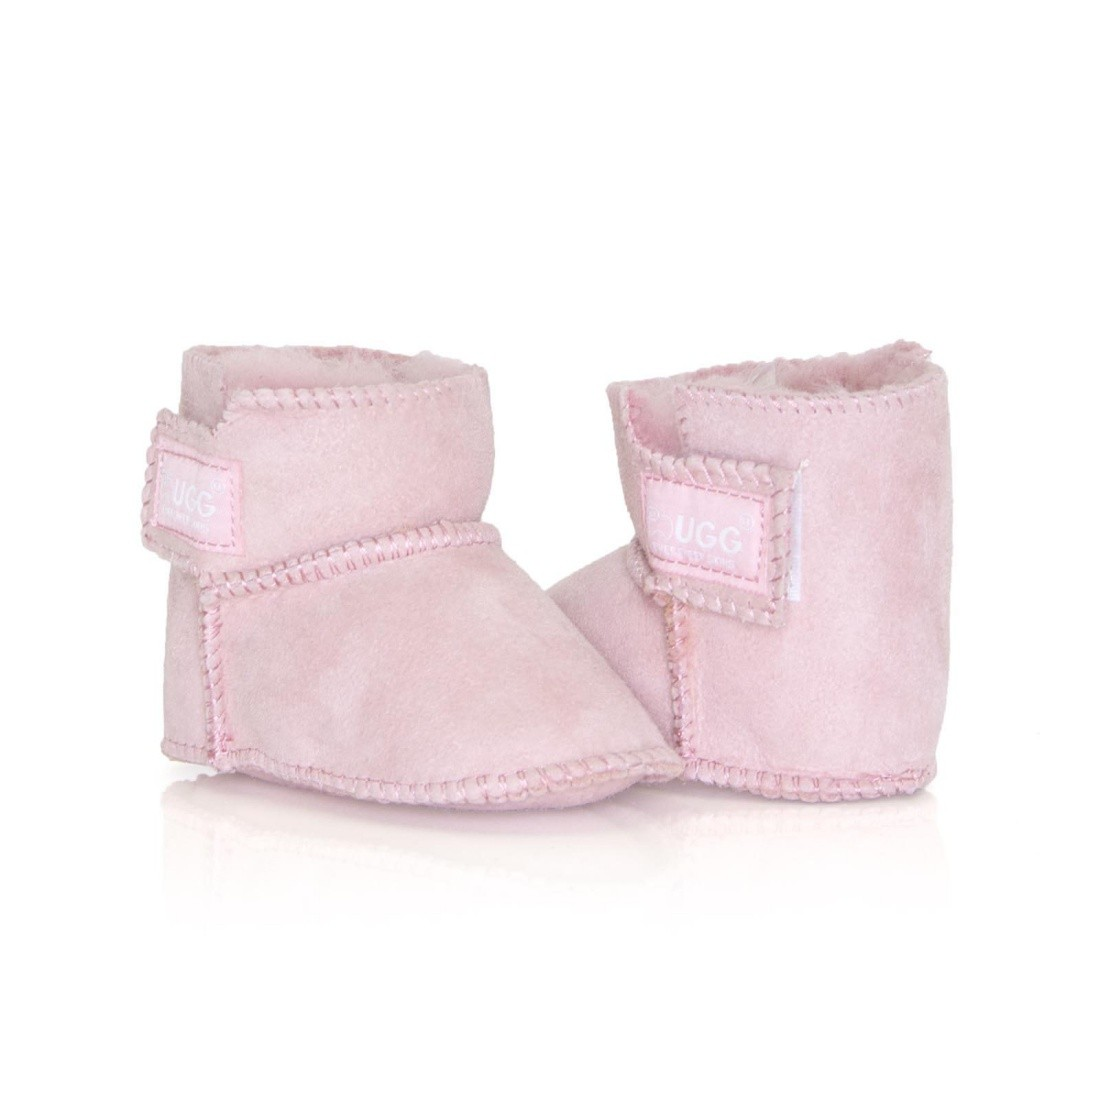 UGG Baby Erin Bootie Infant Boots - Pink - M